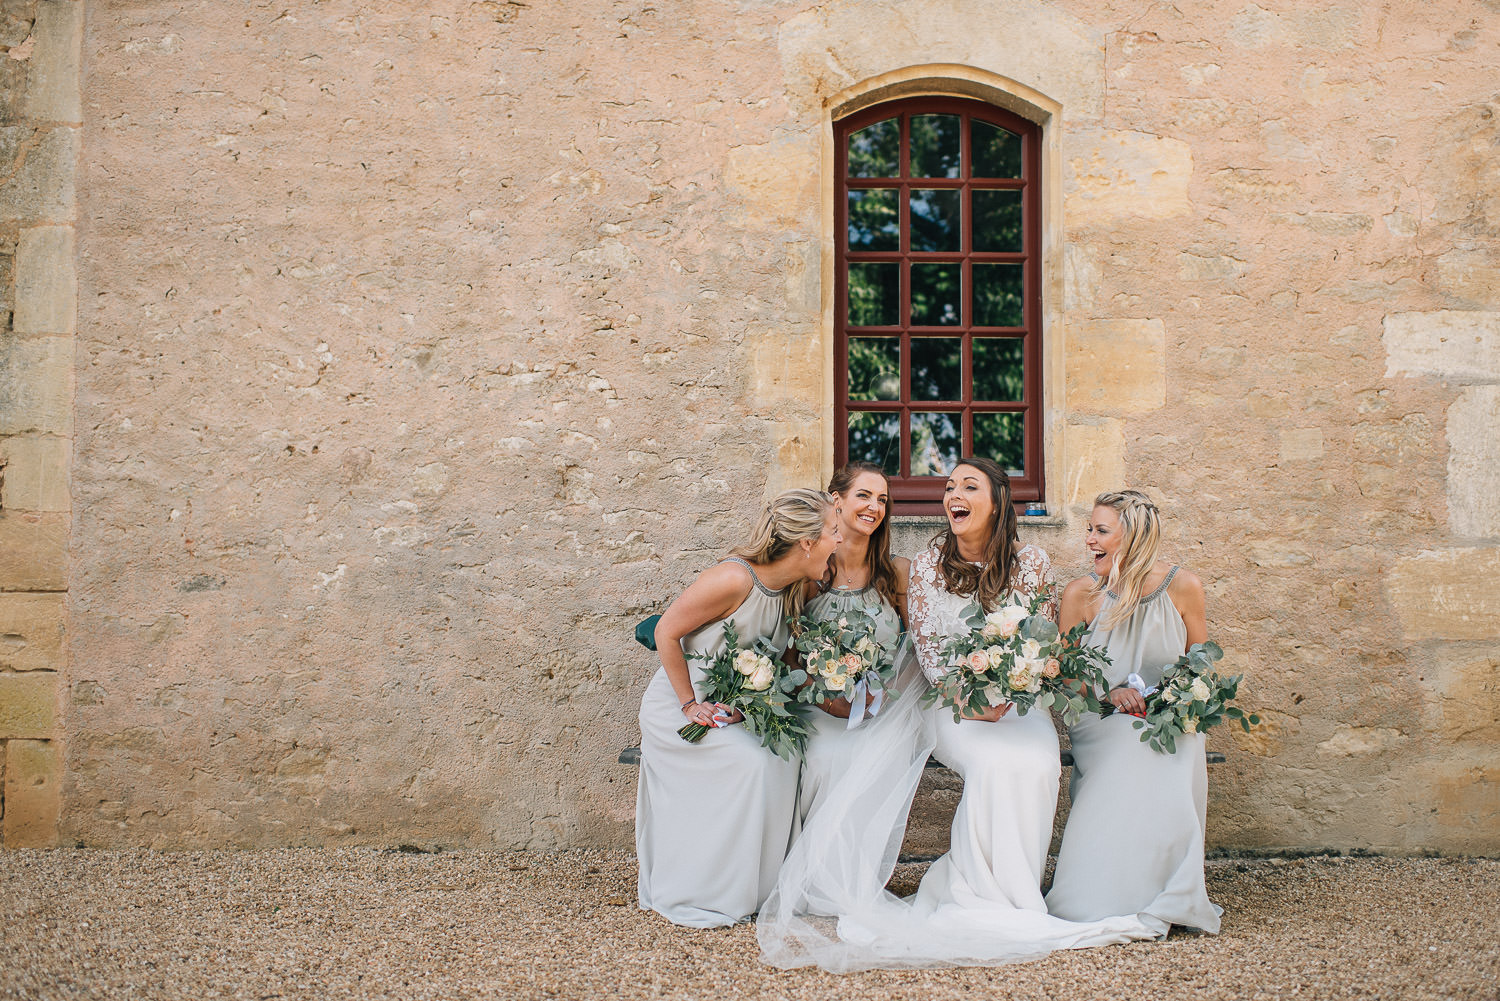 Ellerymay bridal flowers in chateau de la bourlie wedding by destination wedding photographer the shannons photography